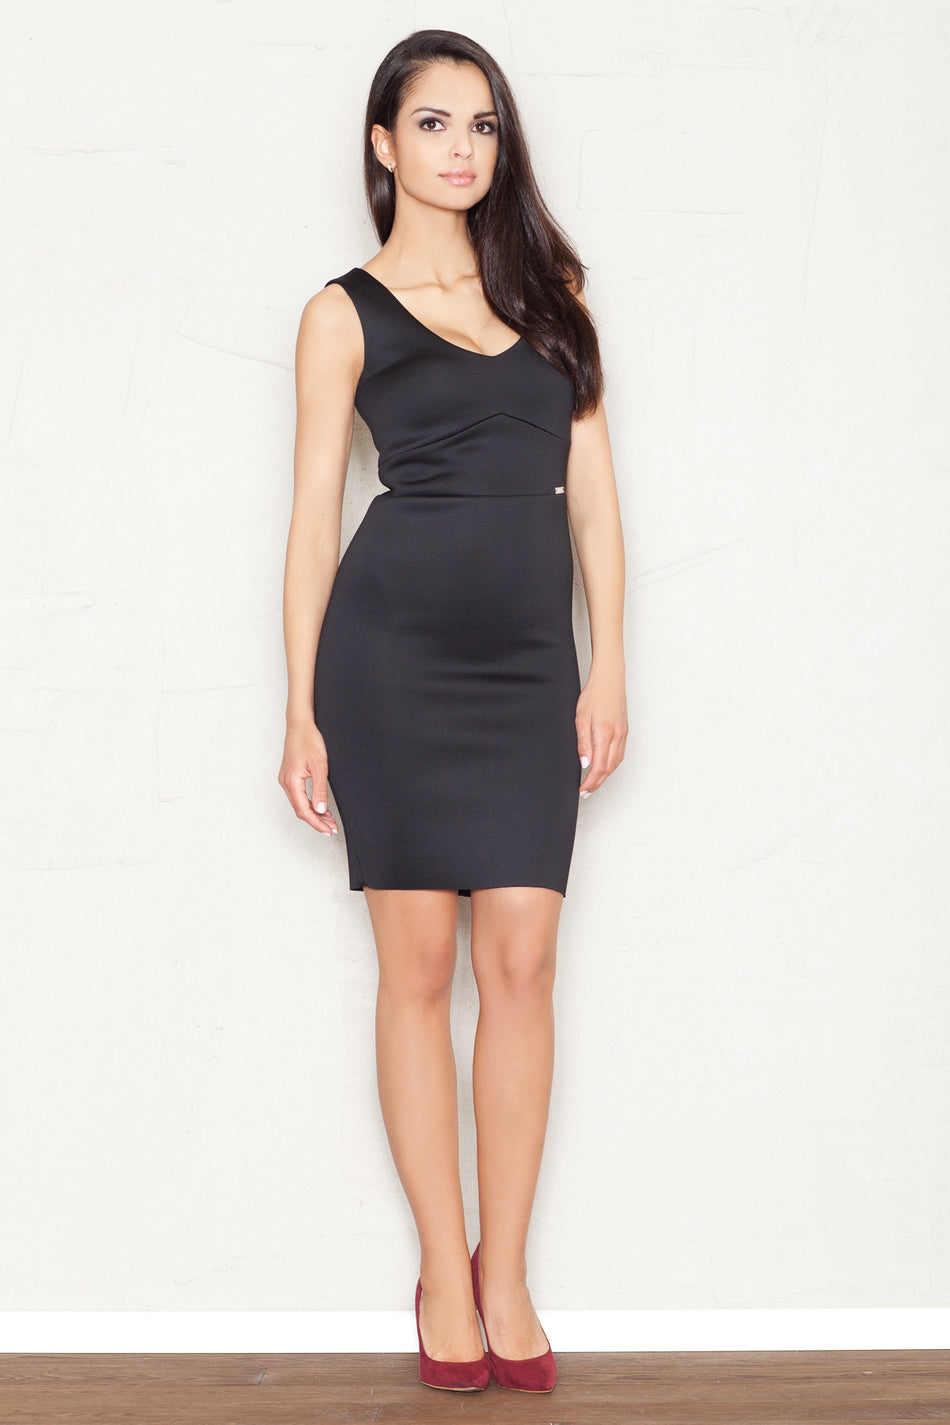 Cocktailkleid model 43781 Figl